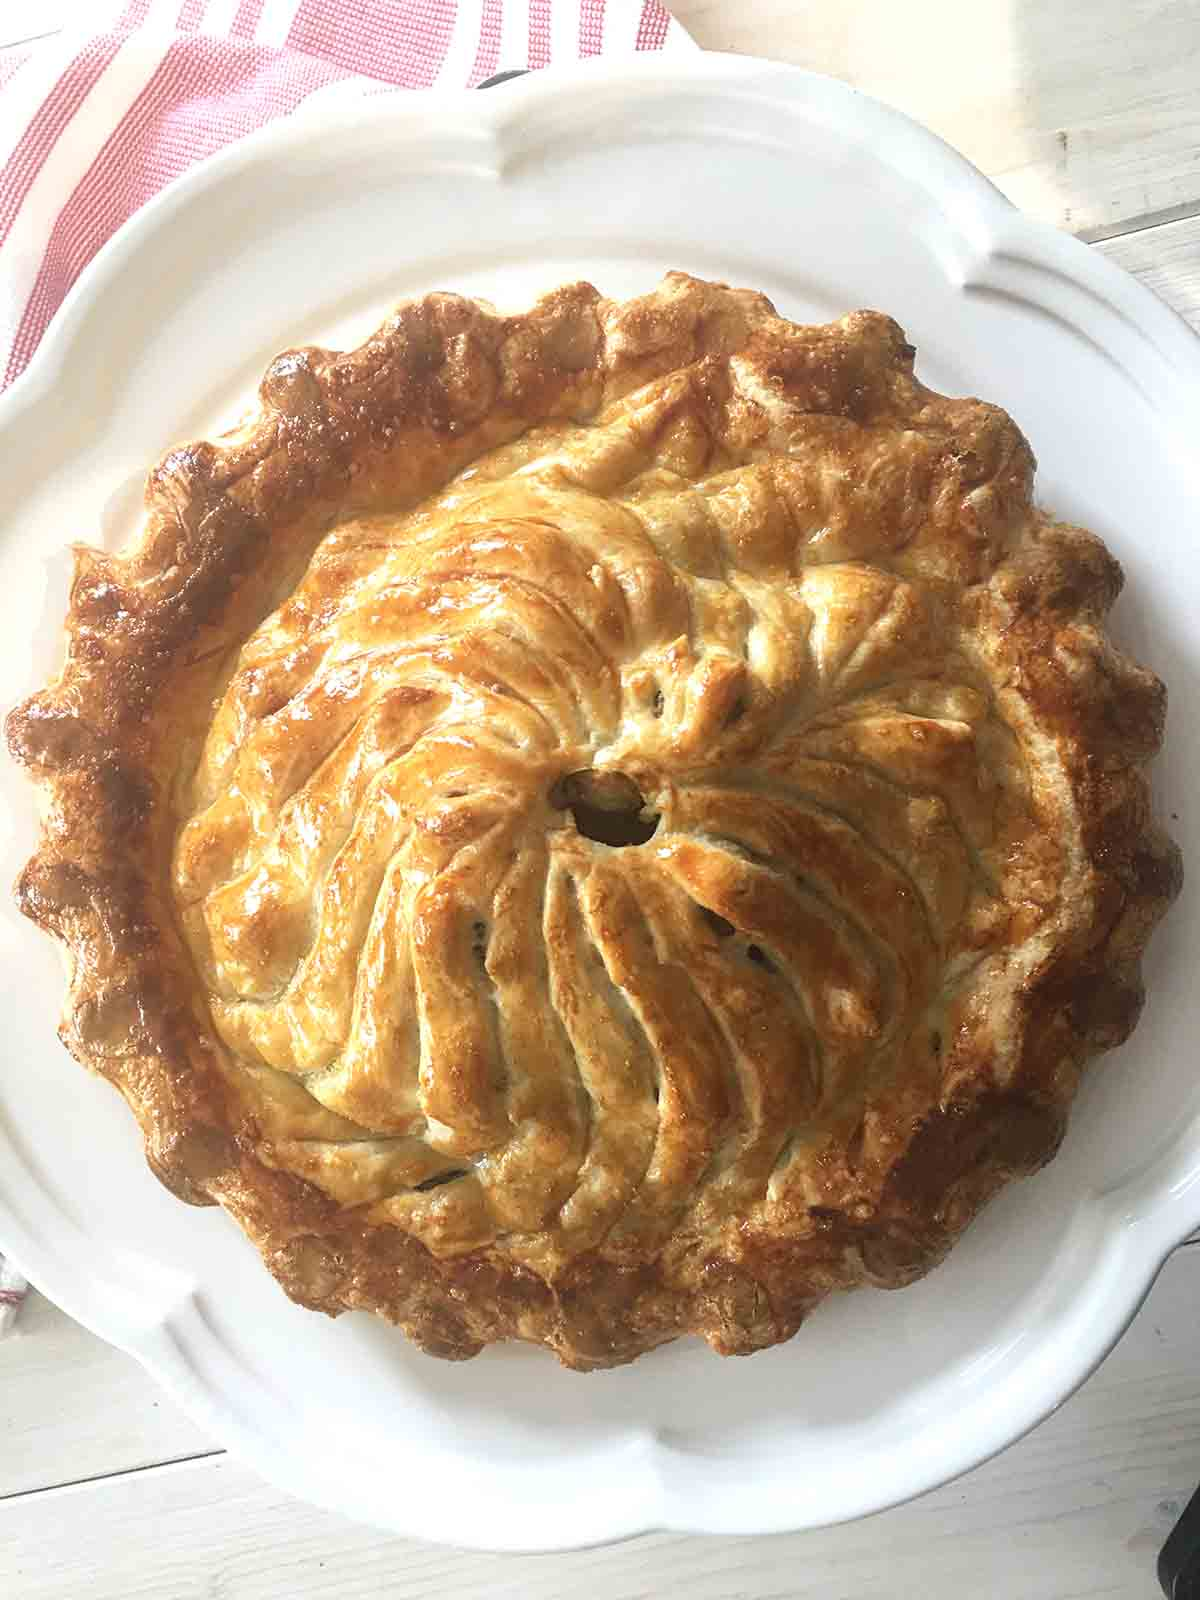 cooked pie overhead view.